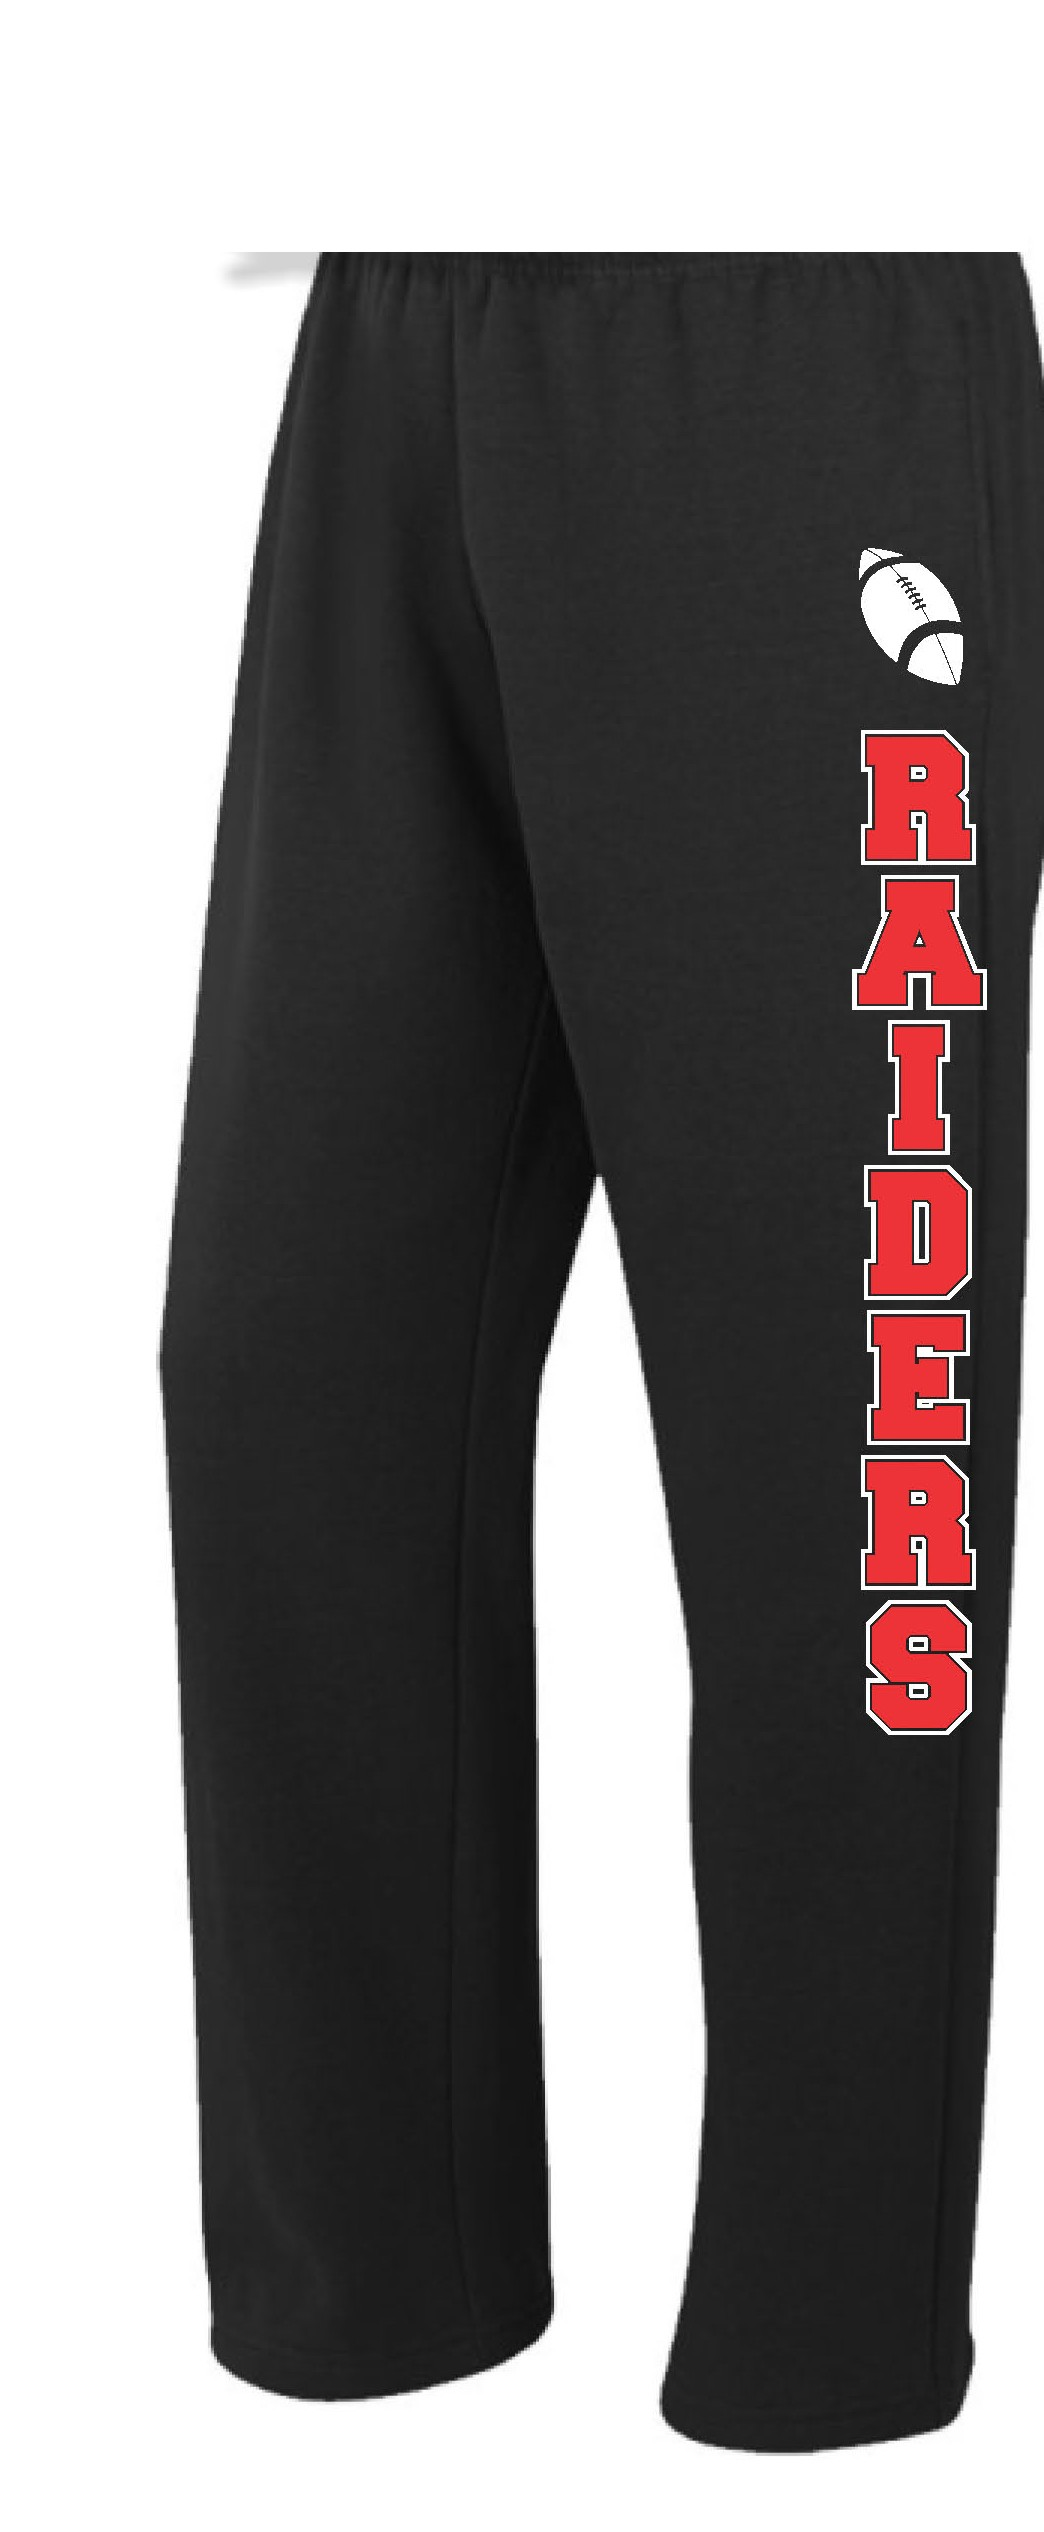 Donovan Football Sweatpants